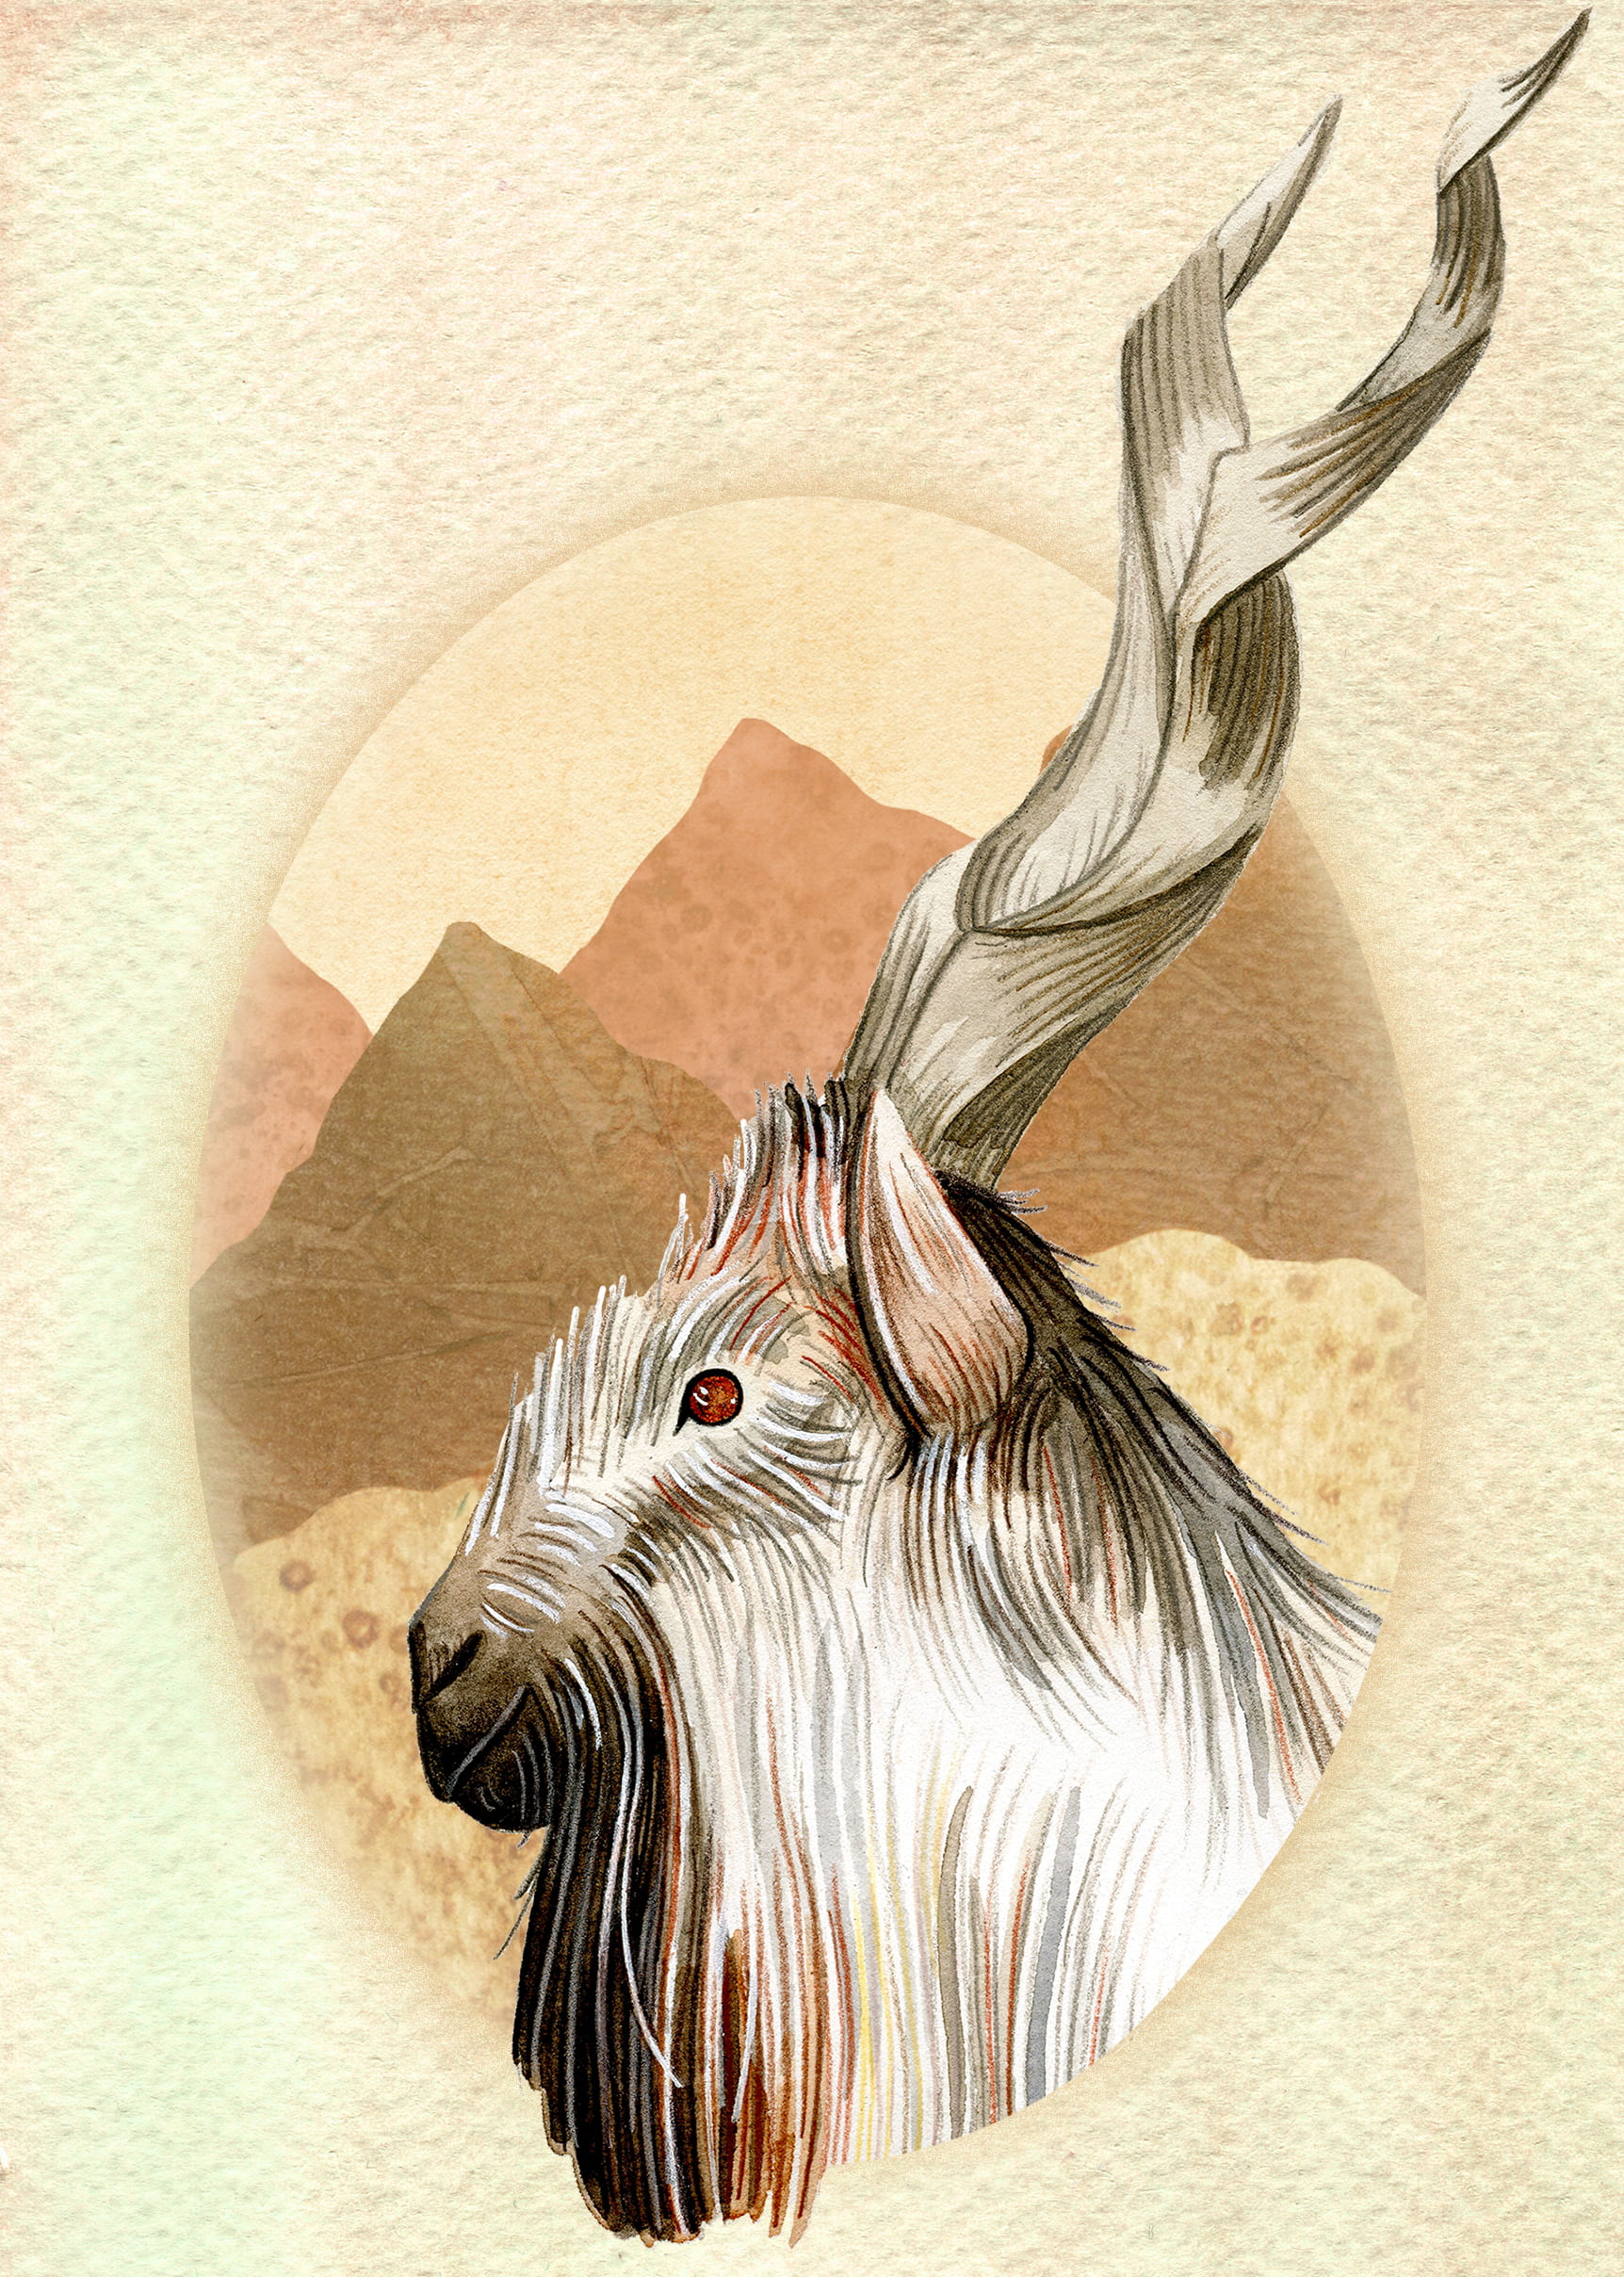 Painting of a Markhor Goat, mountainous terrain shown in the background